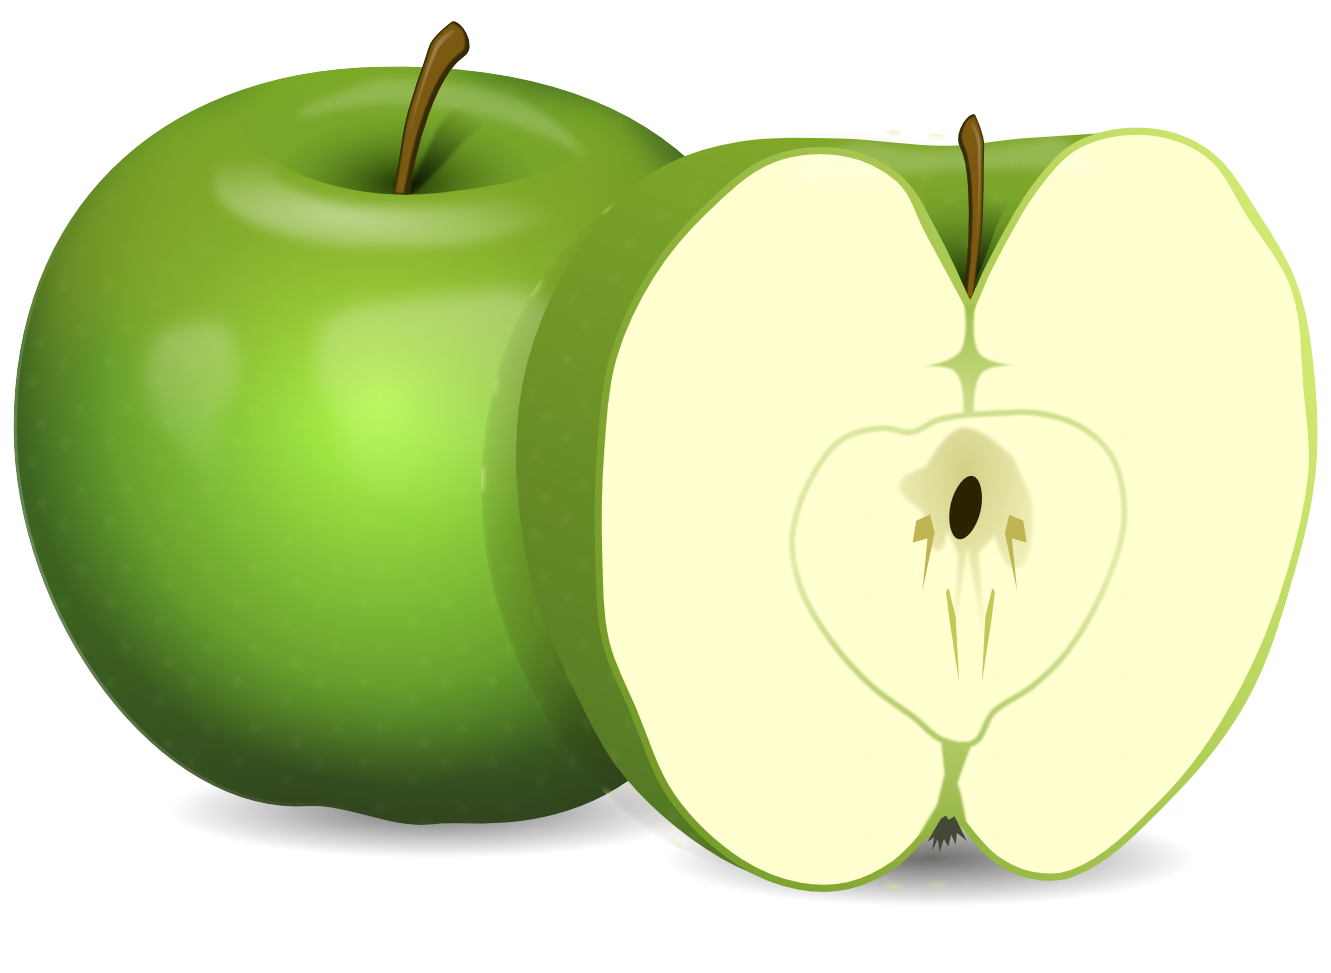 Game clipart apple to apple Tiny #231 Apple Clipart Clipart